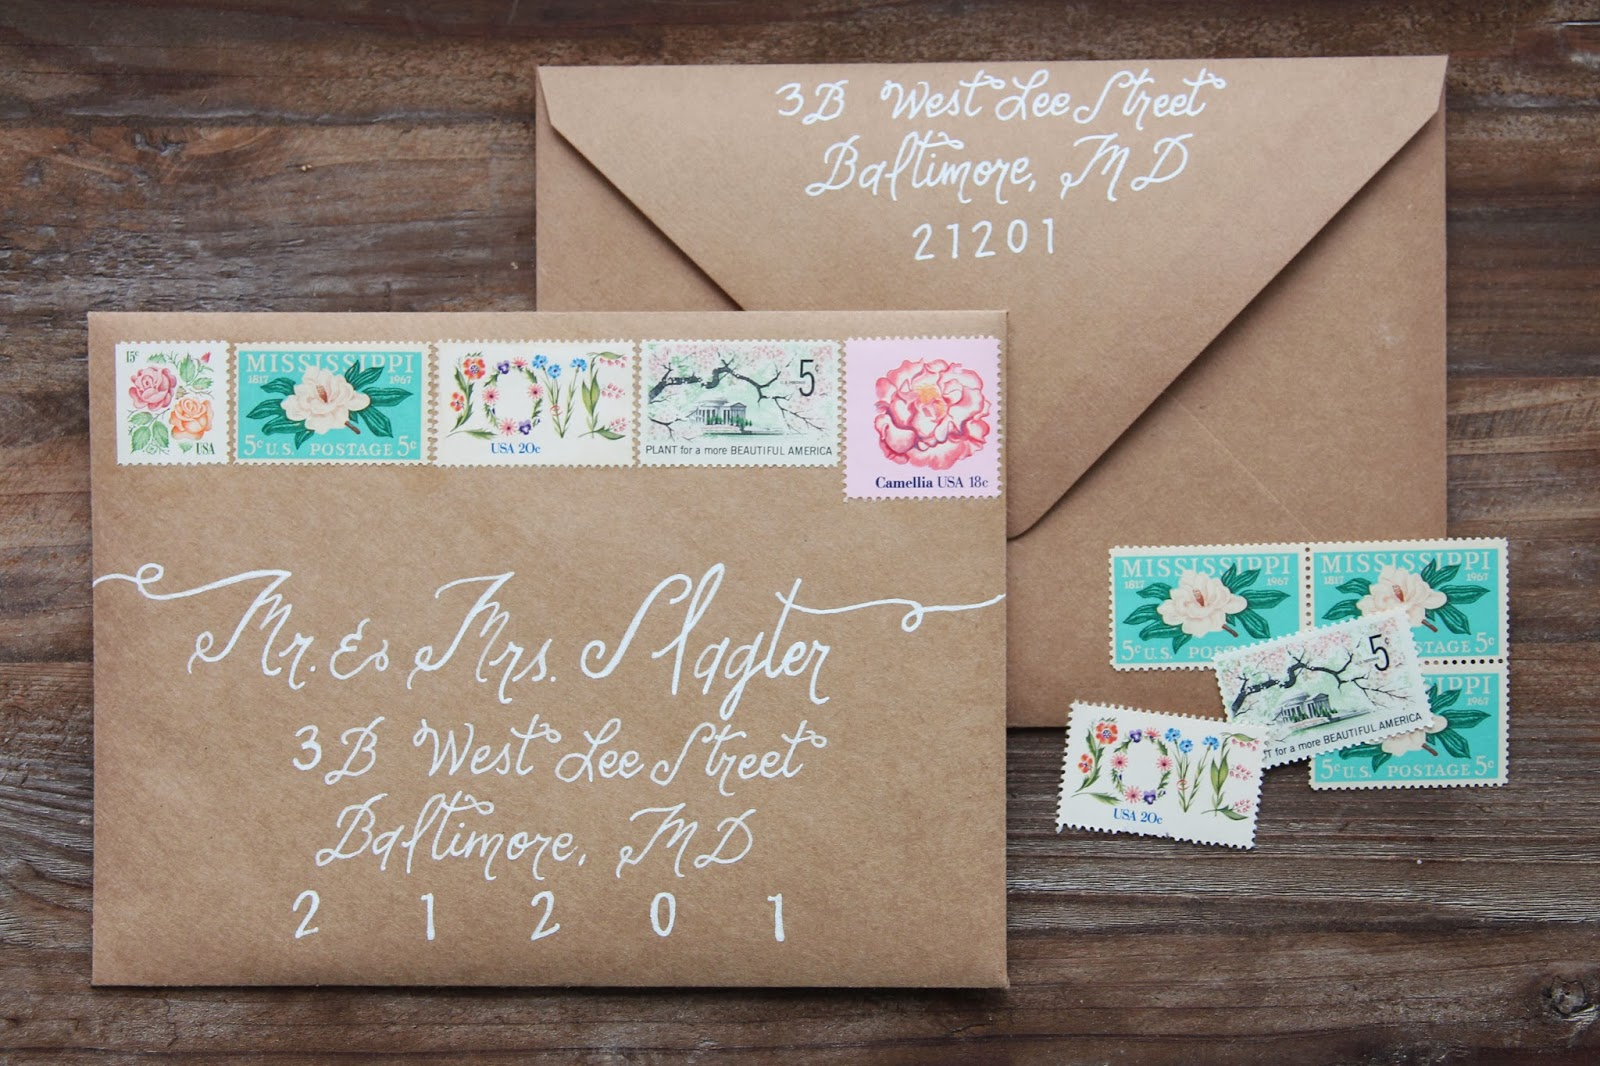 wedding invitations vintage stamps wedding invitation stamps for more than just weddings Can you imagine how gorgeous your holiday cards could be Check out some awesome calligraphy and stamp resources below